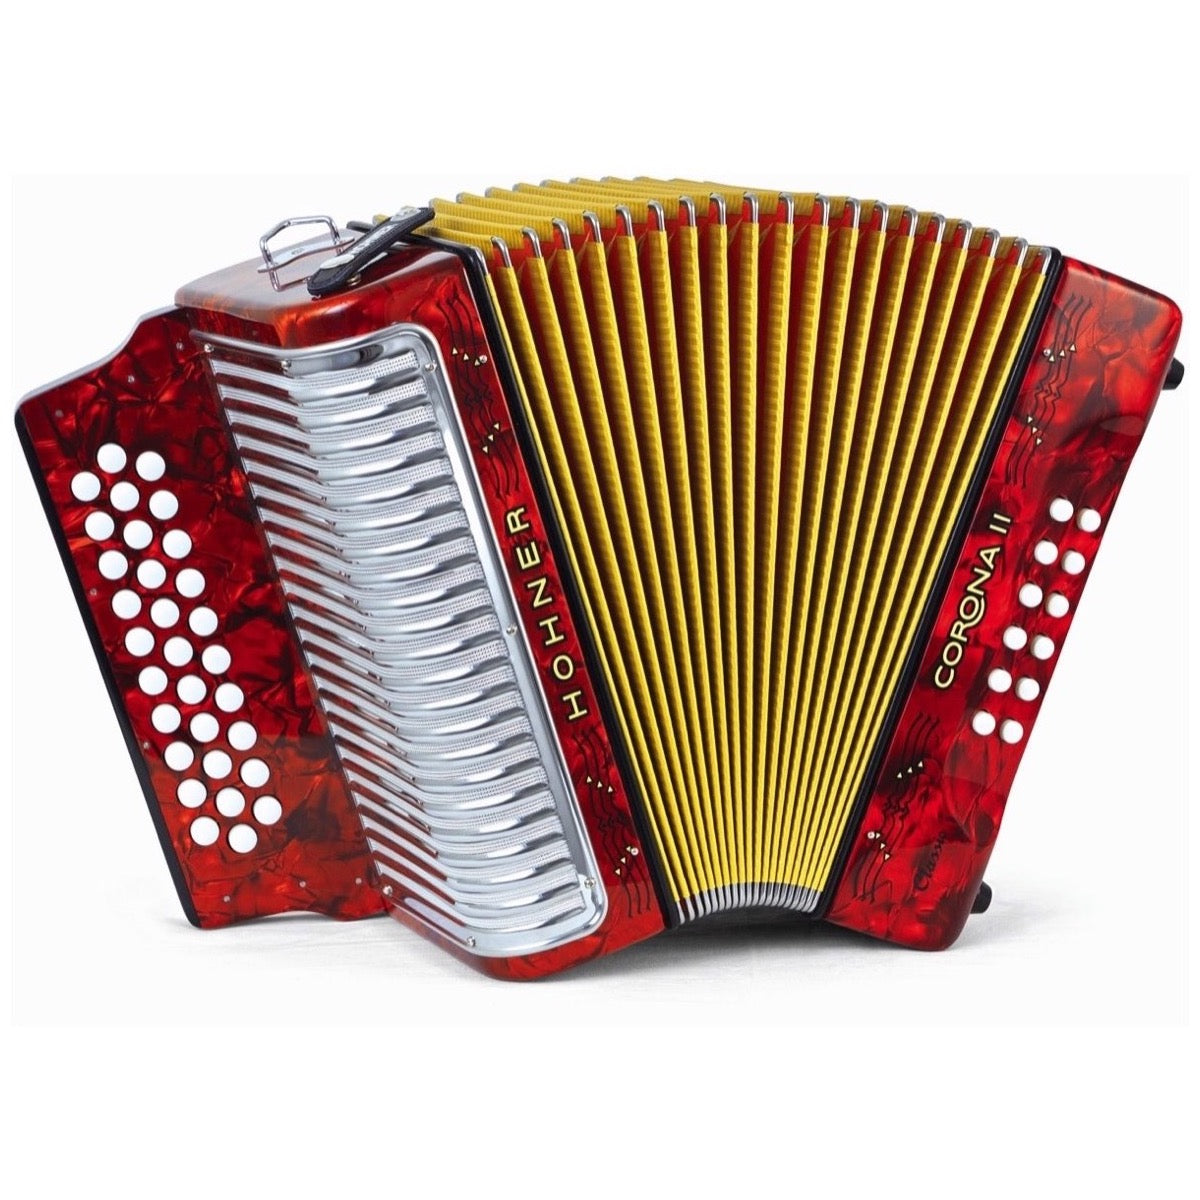 Hohner 3523GR Corona II Classic Accordion, Red